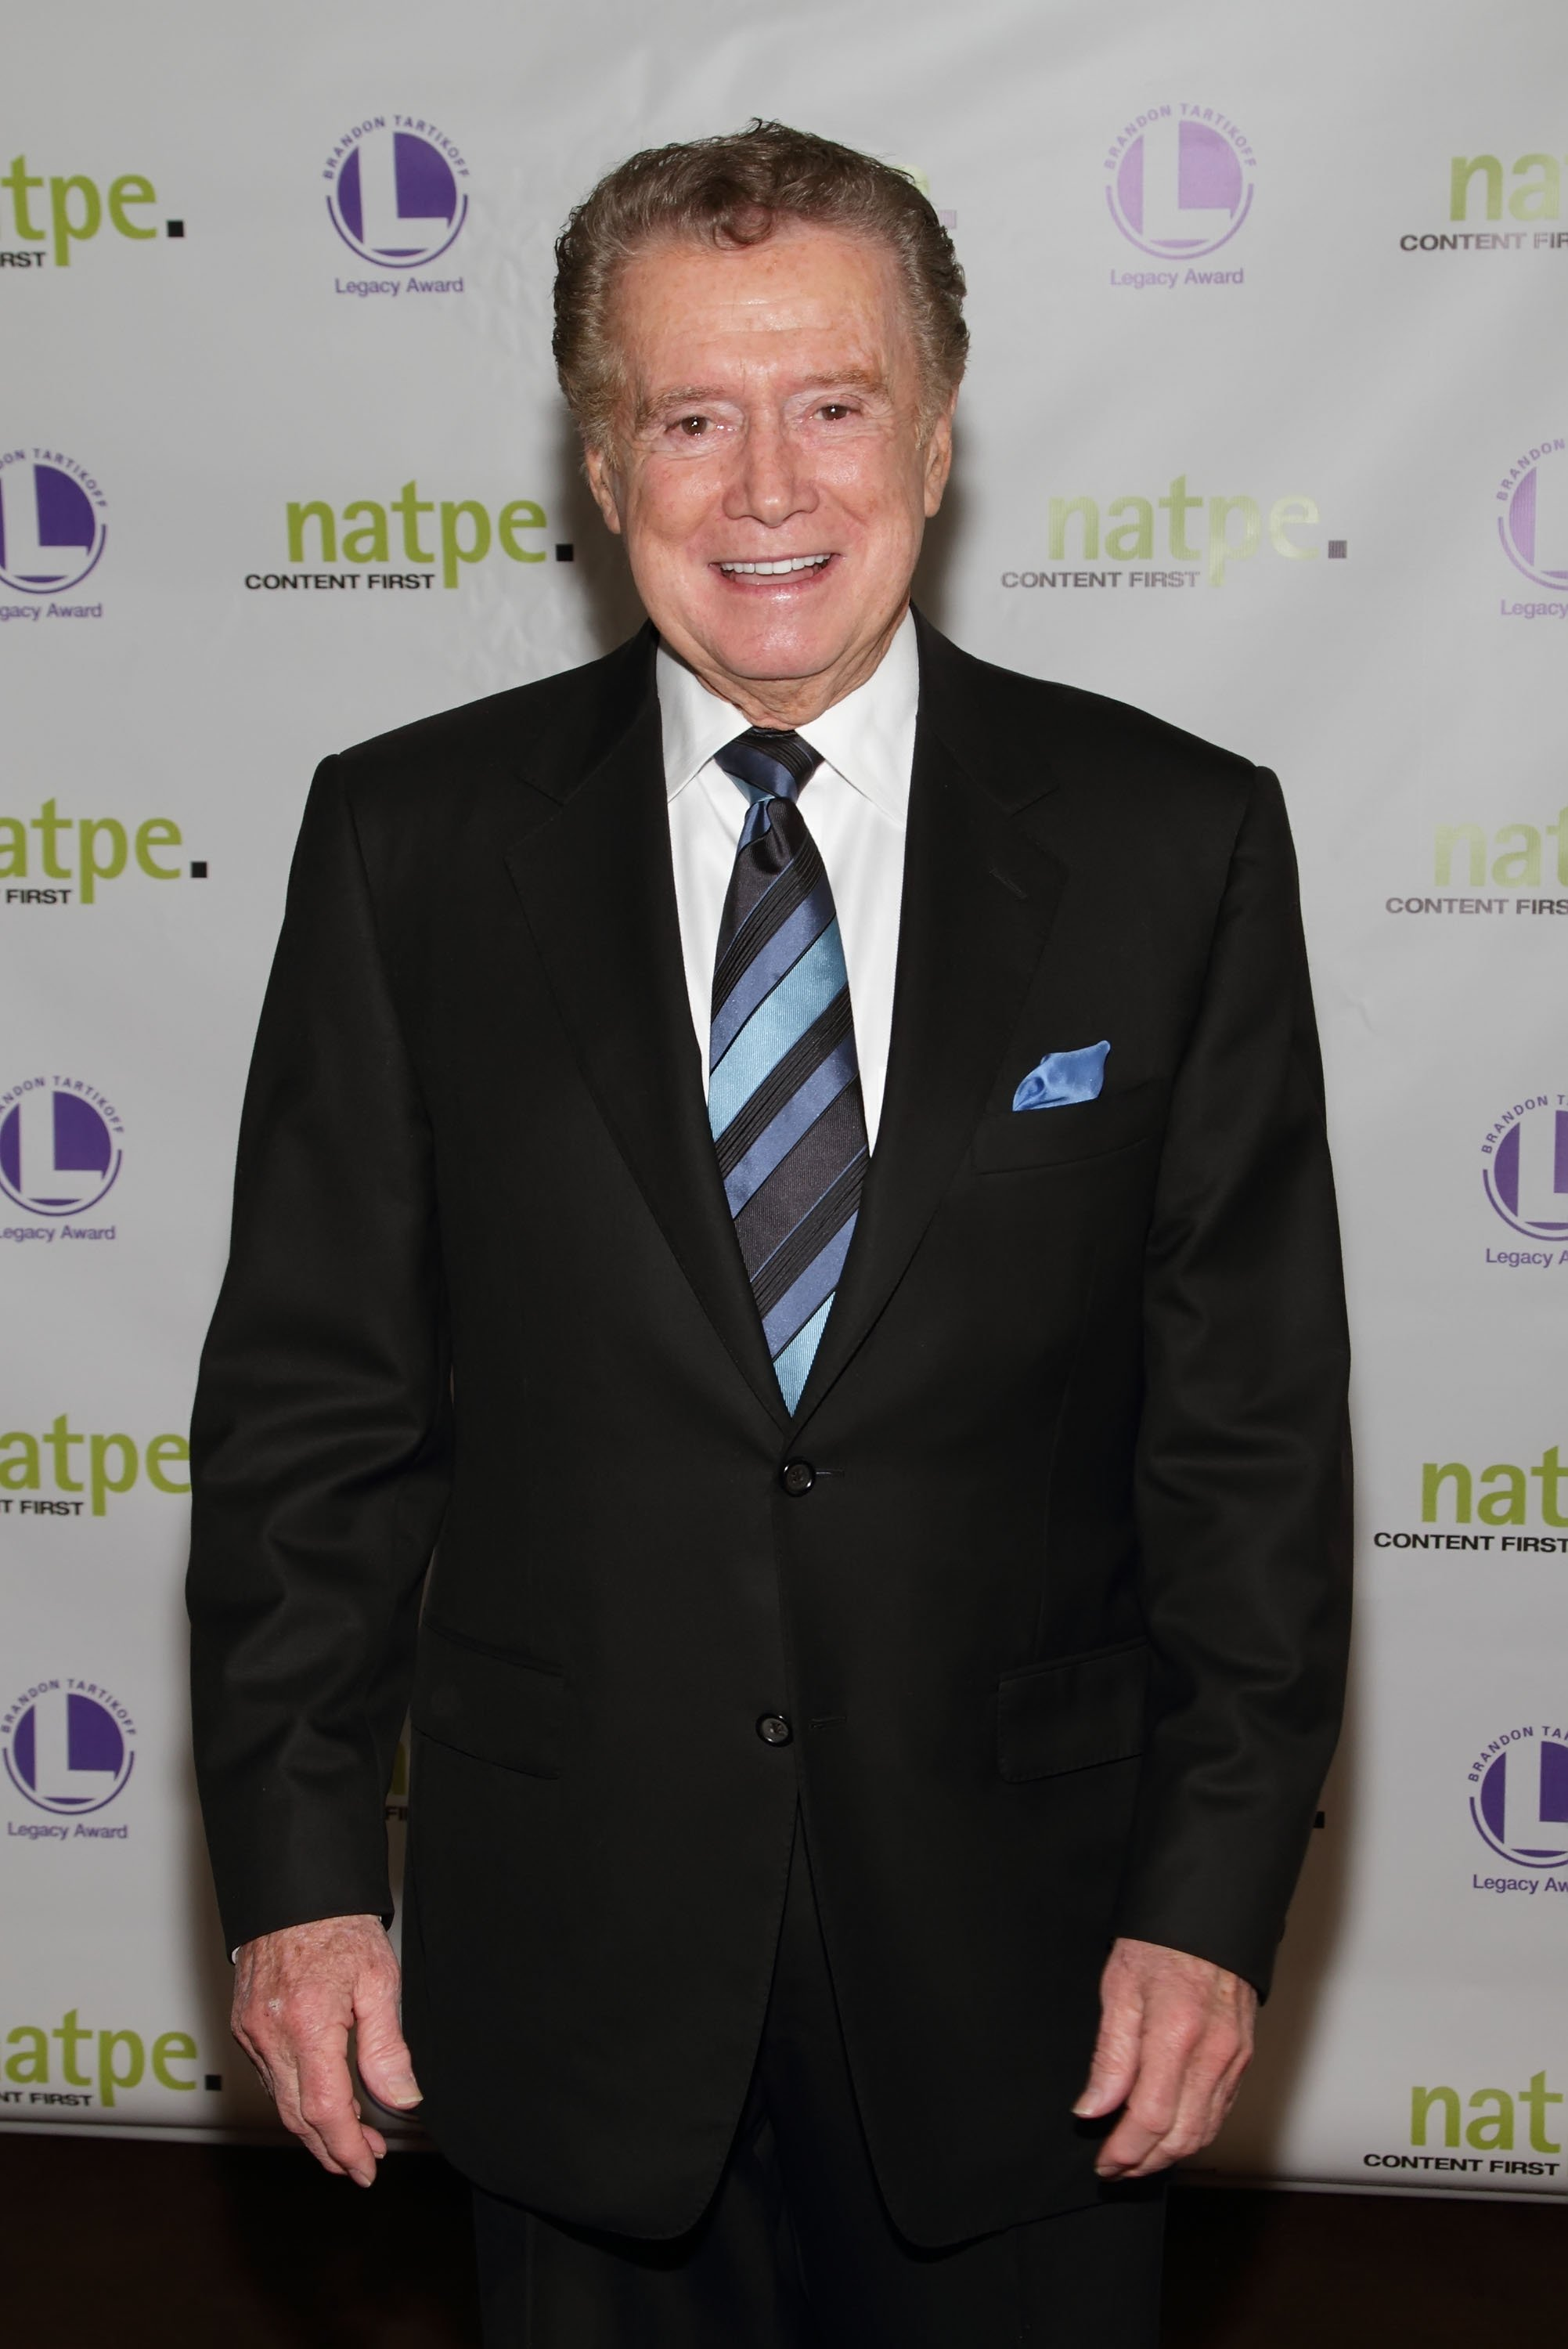 Regis Philbin on January 25, 2011 in Miami Beach, Florida | Source: Getty Images/Global Images Ukraine